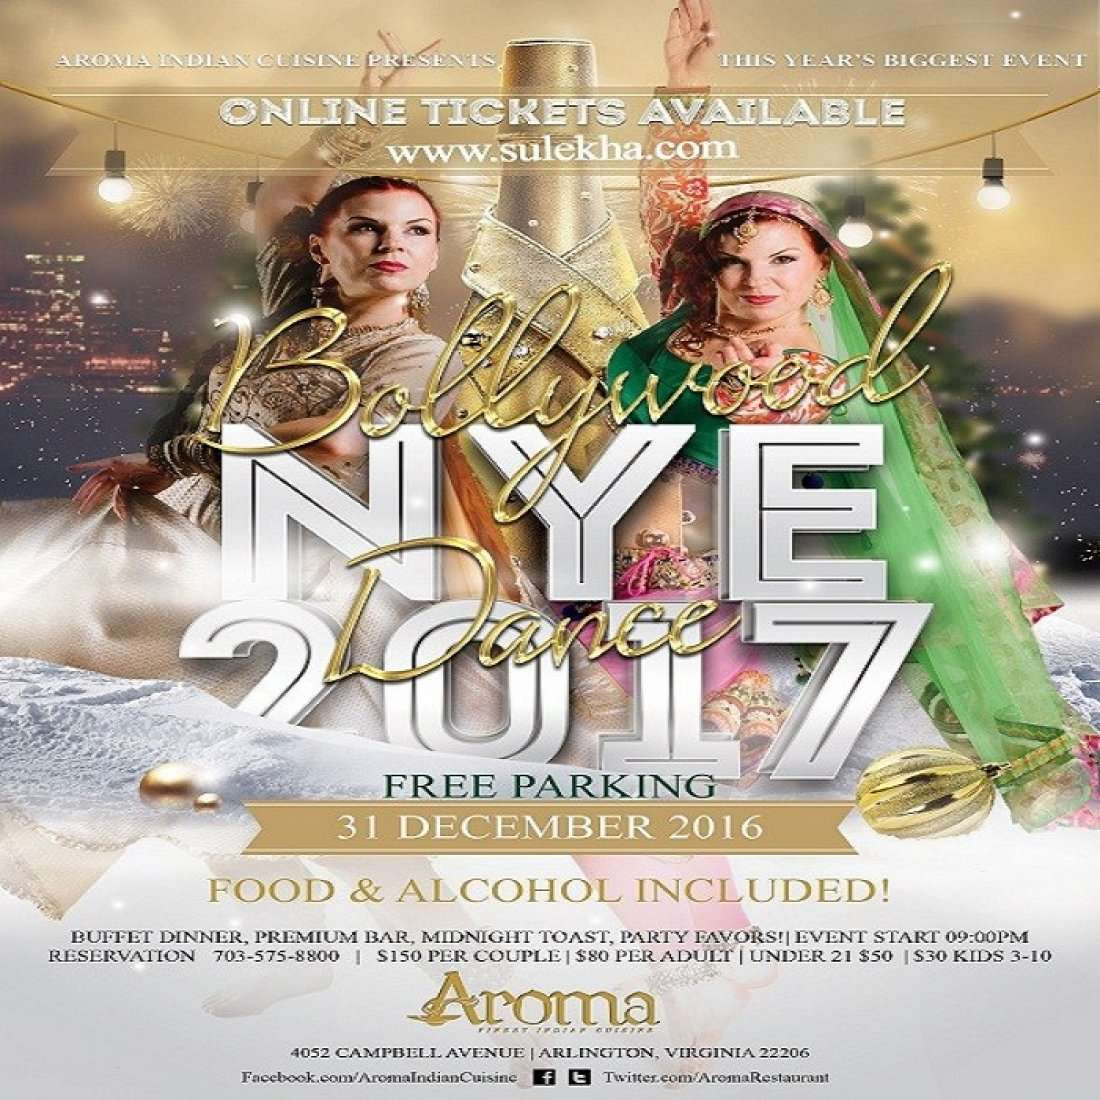 New year eve 2017 at aroma indian cuisine arlington for Aroma indian cuisine arlington va